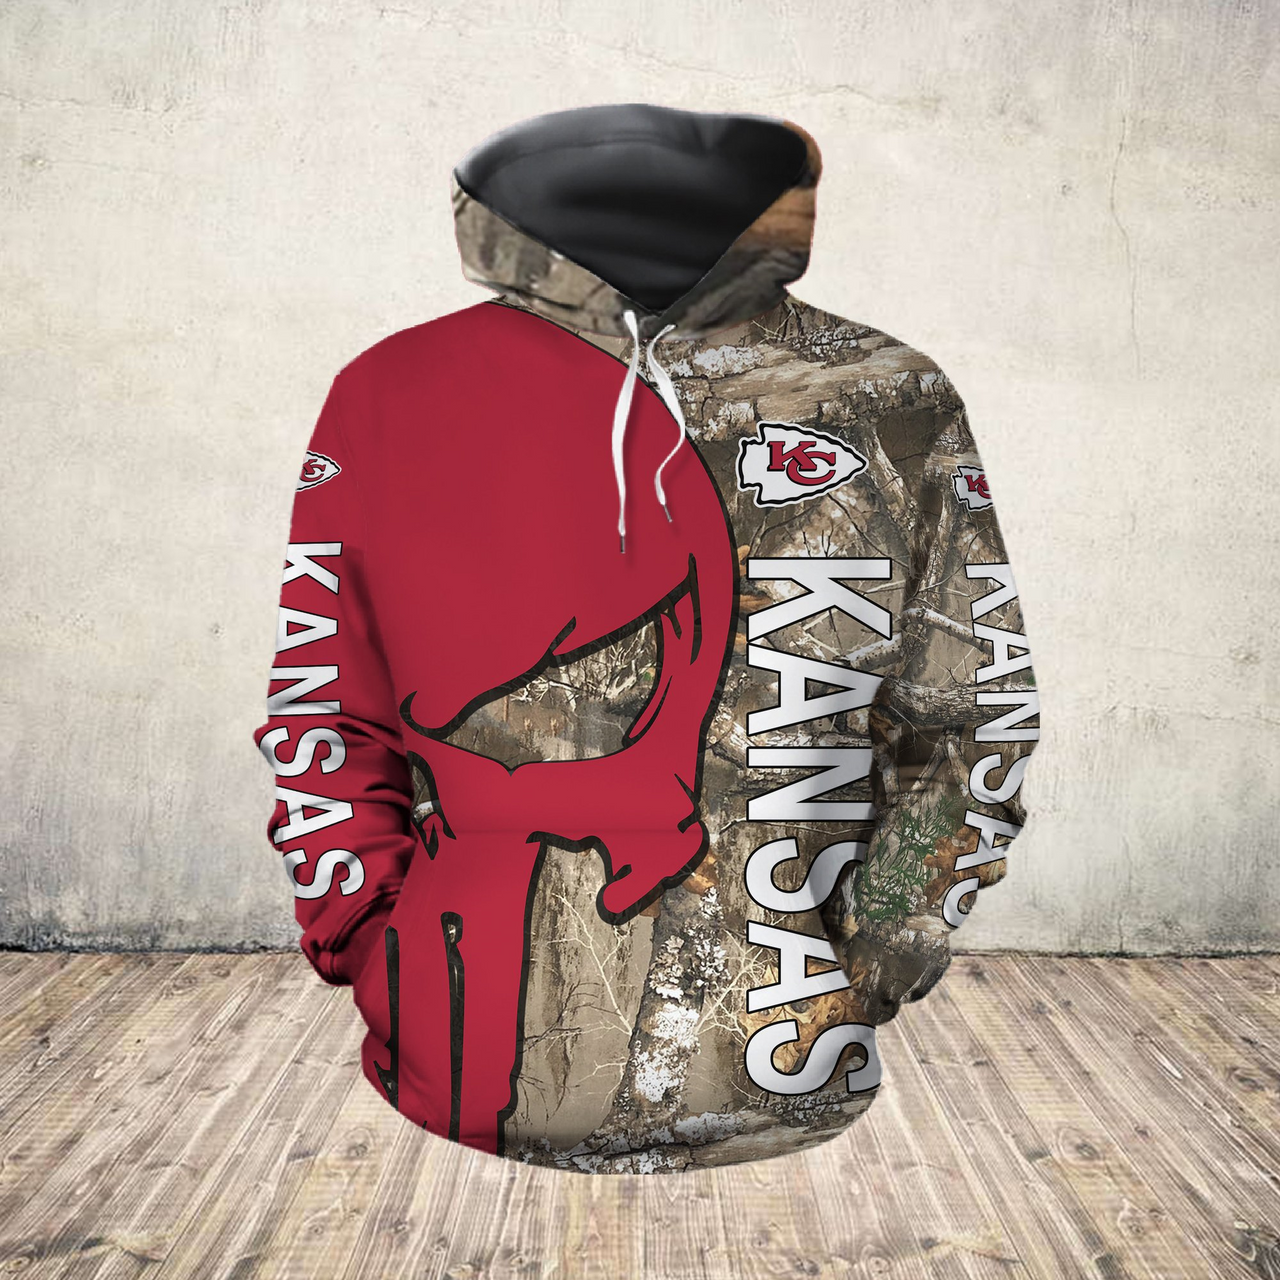 **(OFFICIAL-N.F.L.KANSAS-CITY-CHIEFS-PULLOVER-HOODIES/DETAILED-3D-CUSTOM-GRAPHIC-PRINTED-REAL-TREE-CAMO. PUNISHER-SKULL-DESIGN/OFFICIAL-CUSTOM-CHIEFS-LOGOS & OFFICIAL-CLASSIC-CHIEFS-COLORS/WARM-PREMIUM-CHIEFS-GAME-DAY-TEAM-PULLOVER-HOODIES)**